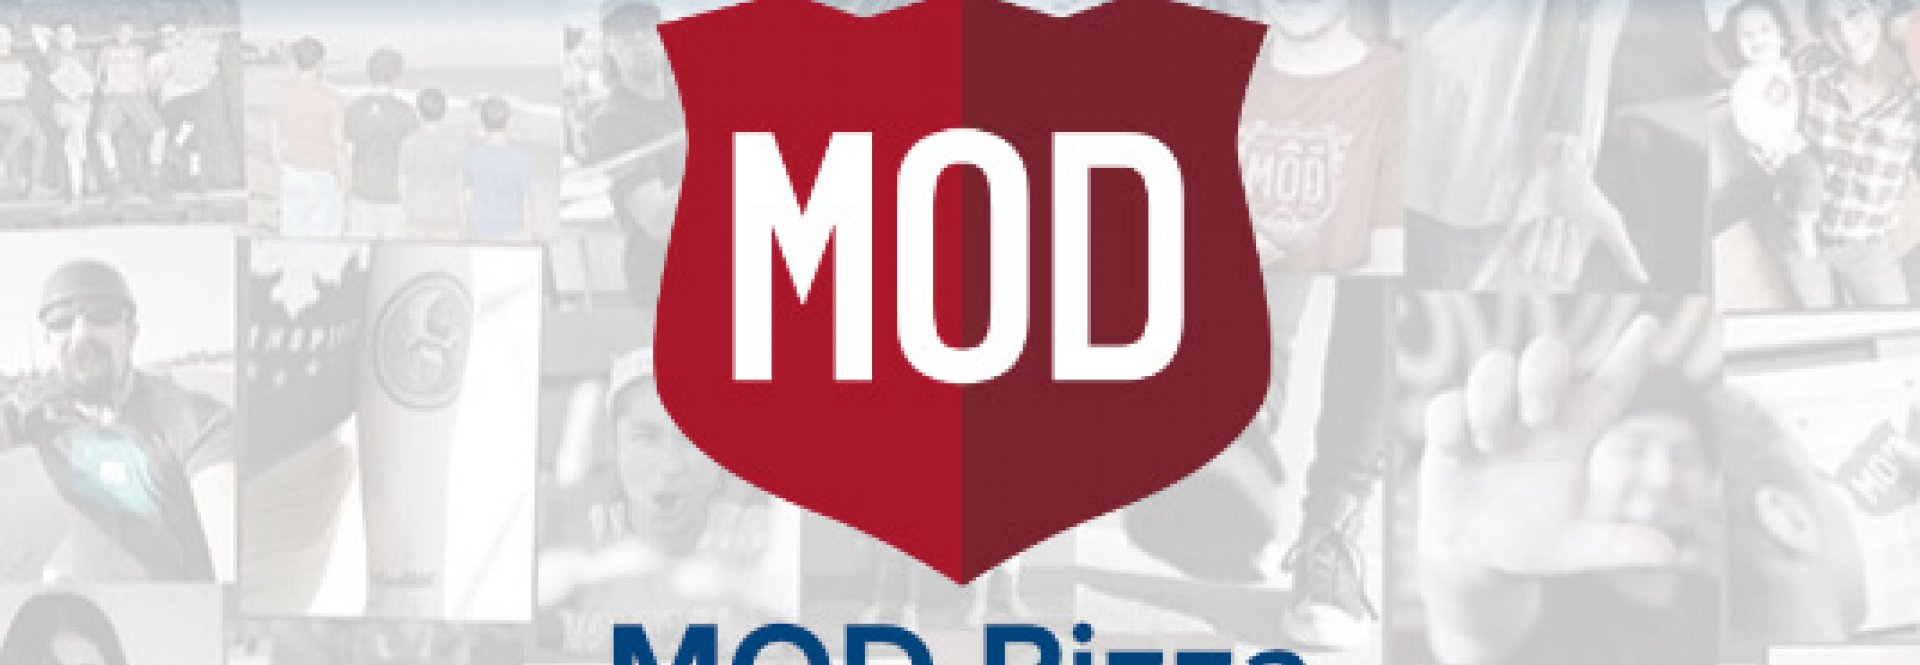 MOD Pizza Fundraiser for Winnebago County CASA Wednesday, April 7th 10:30 AM -9:00 PM